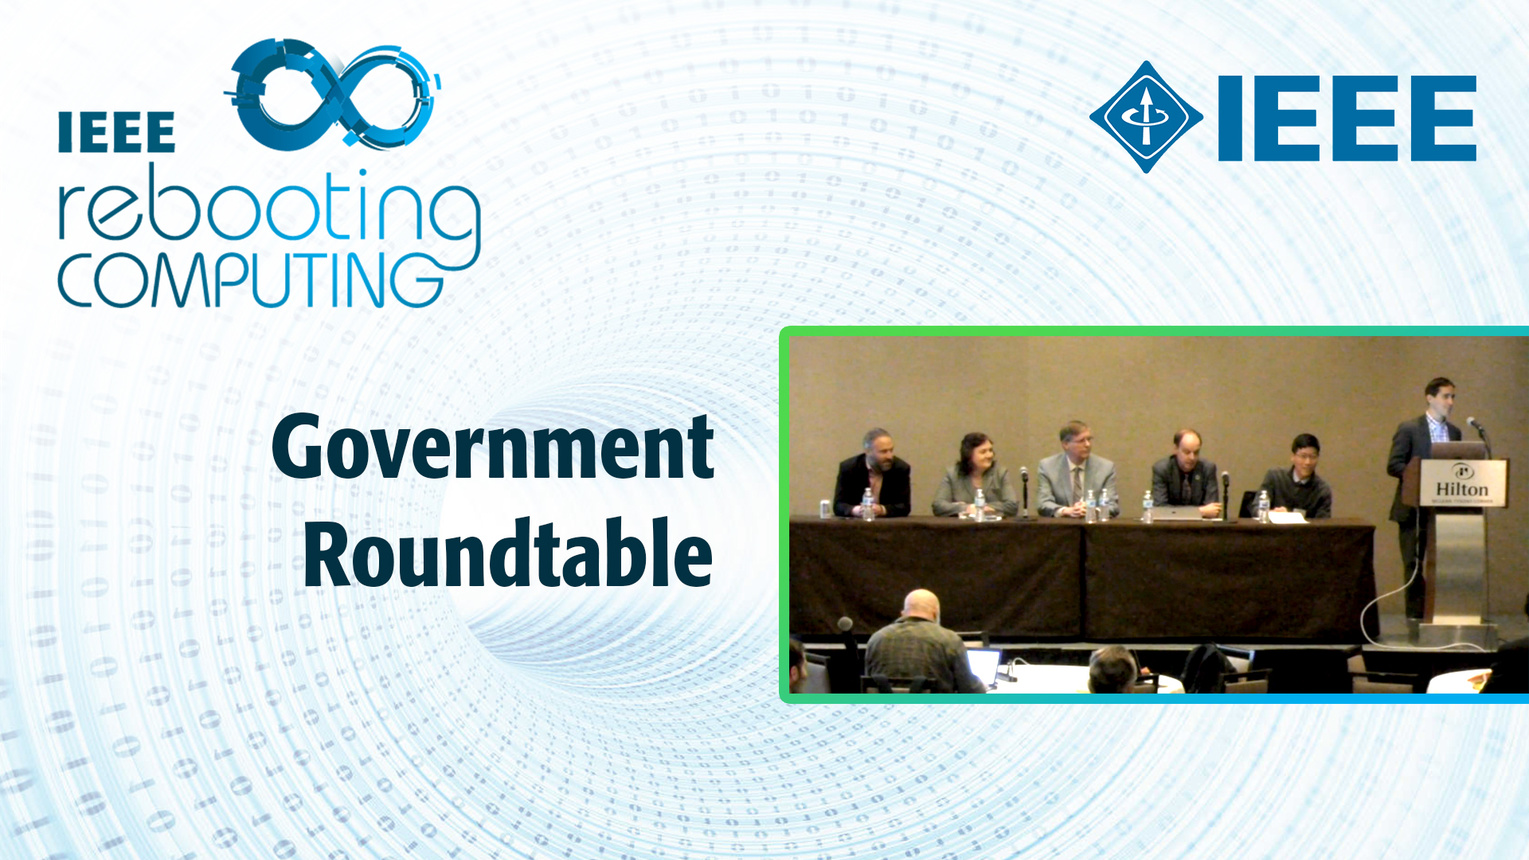 Government Roundtable - ICRC 2018